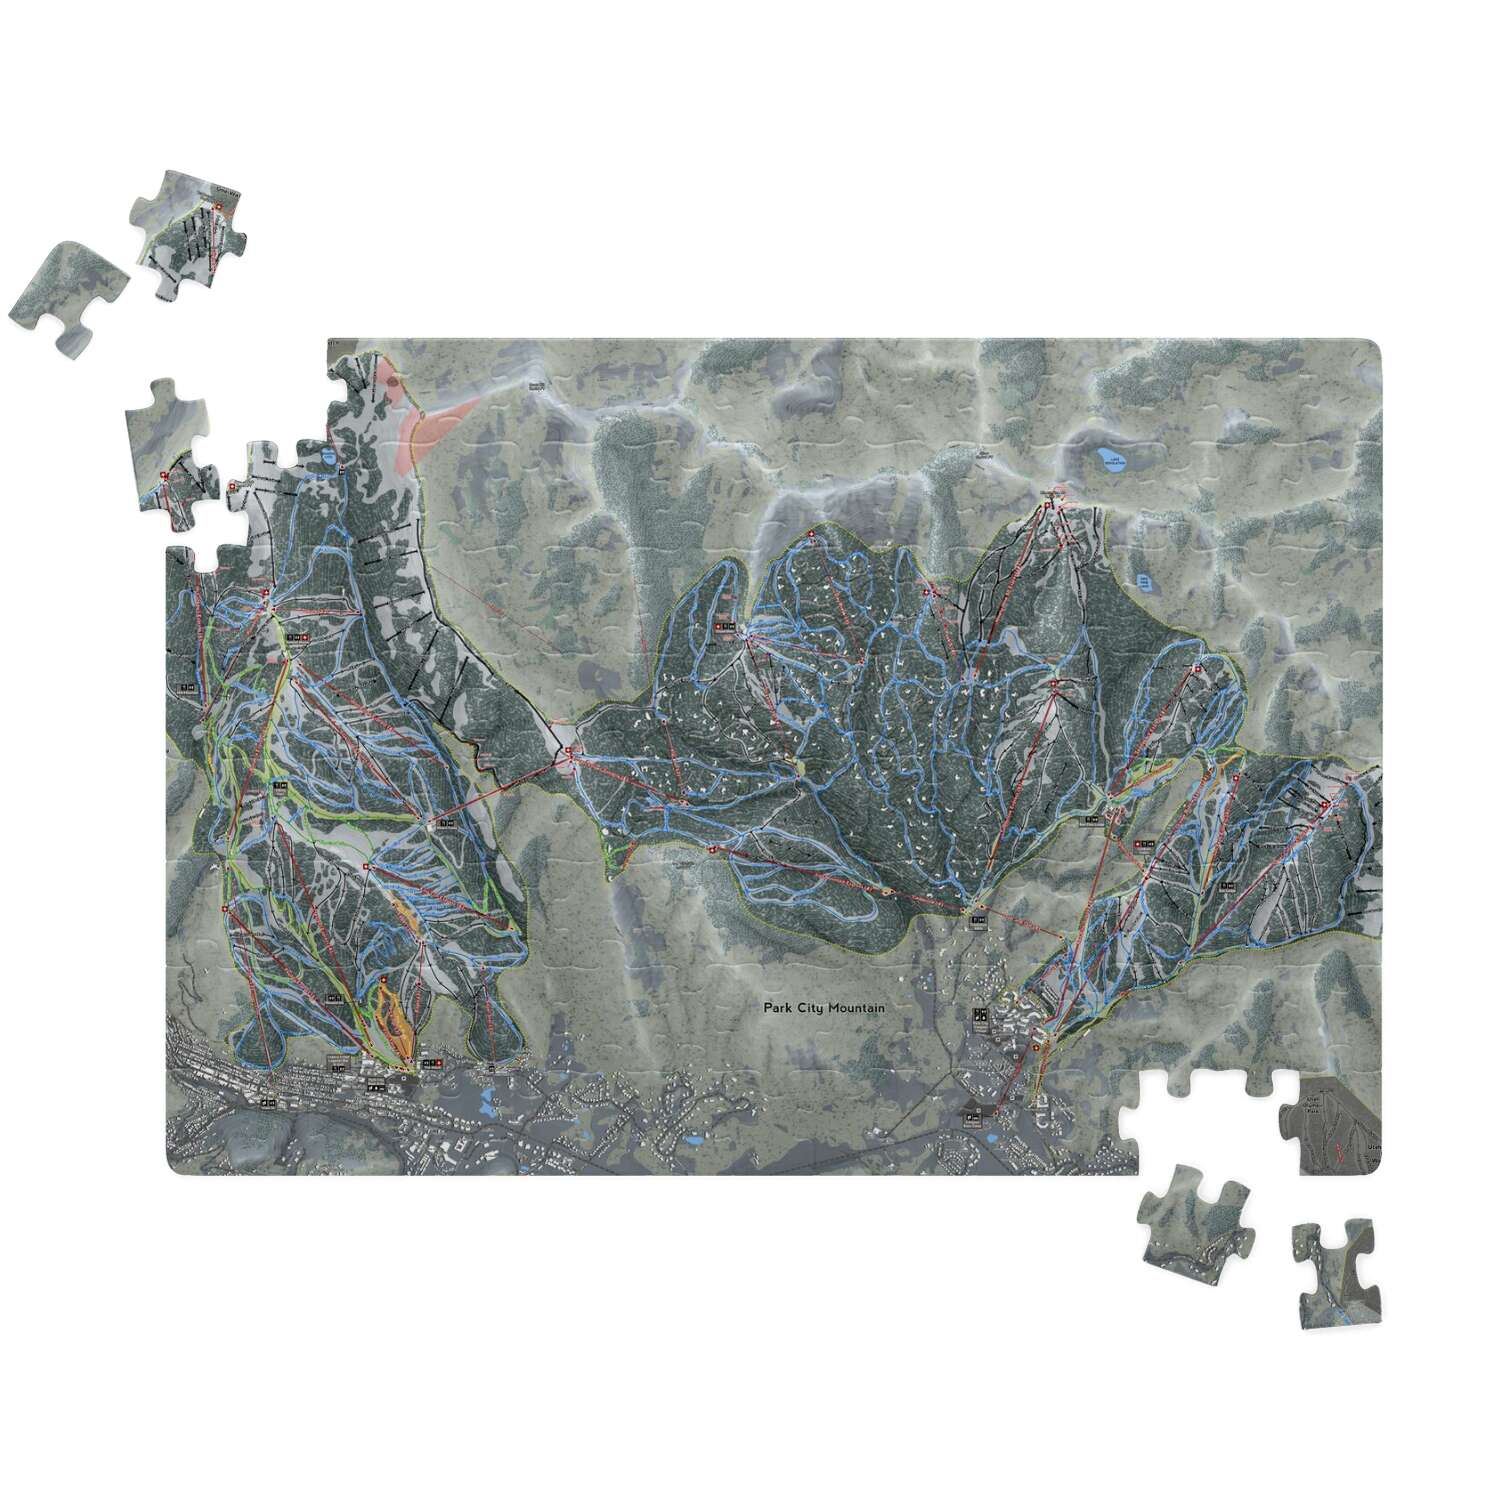 Park City, Utah Ski Resort Map puzzle